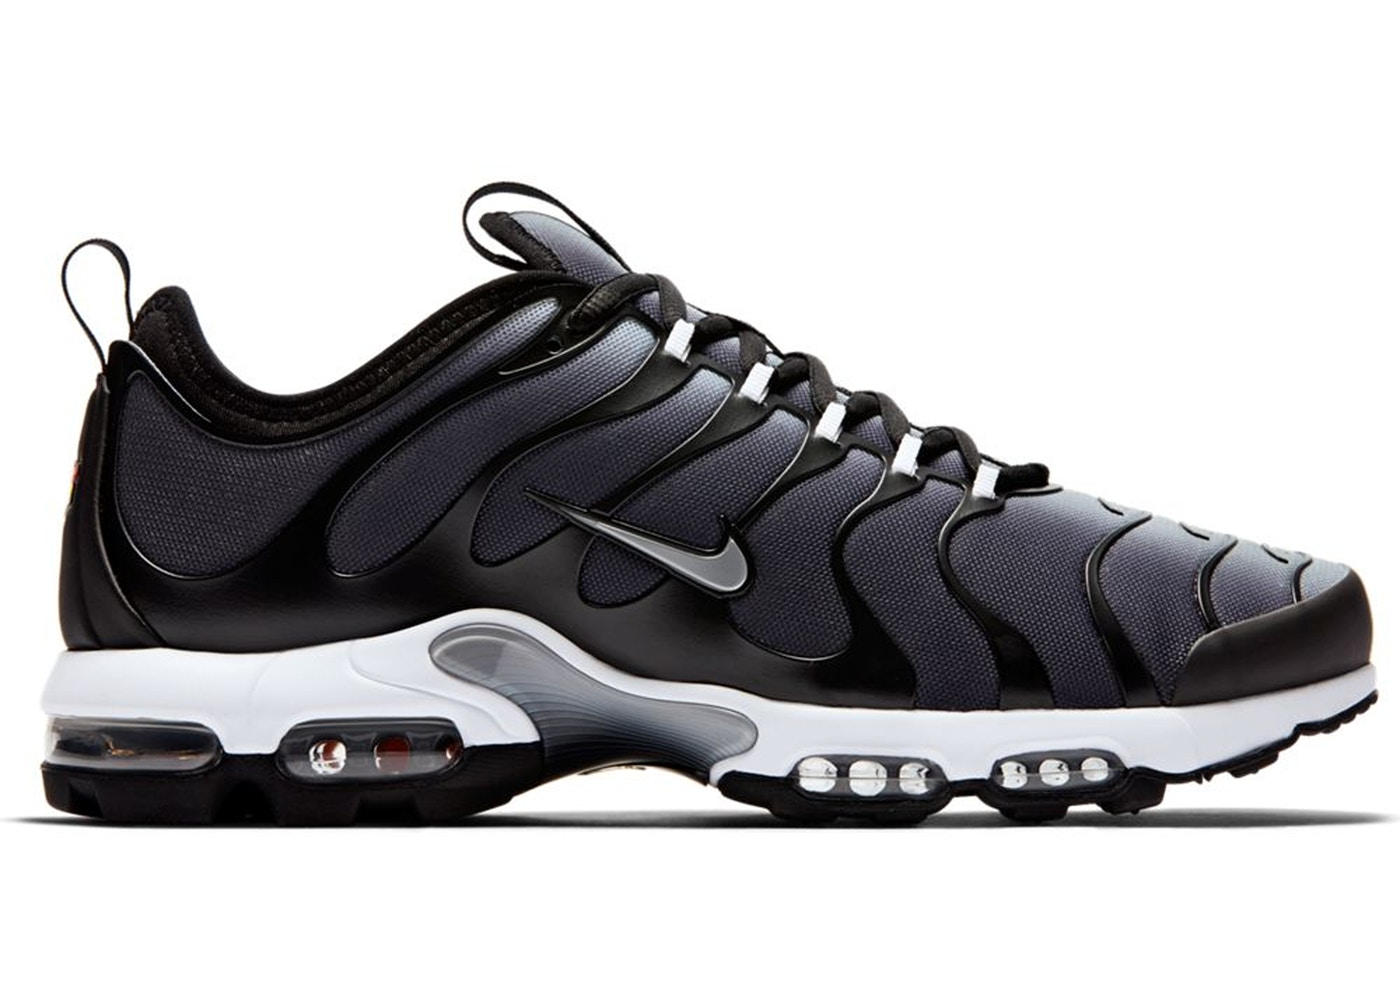 Air Max Plus TN Ultra Black Silver - 898015-001